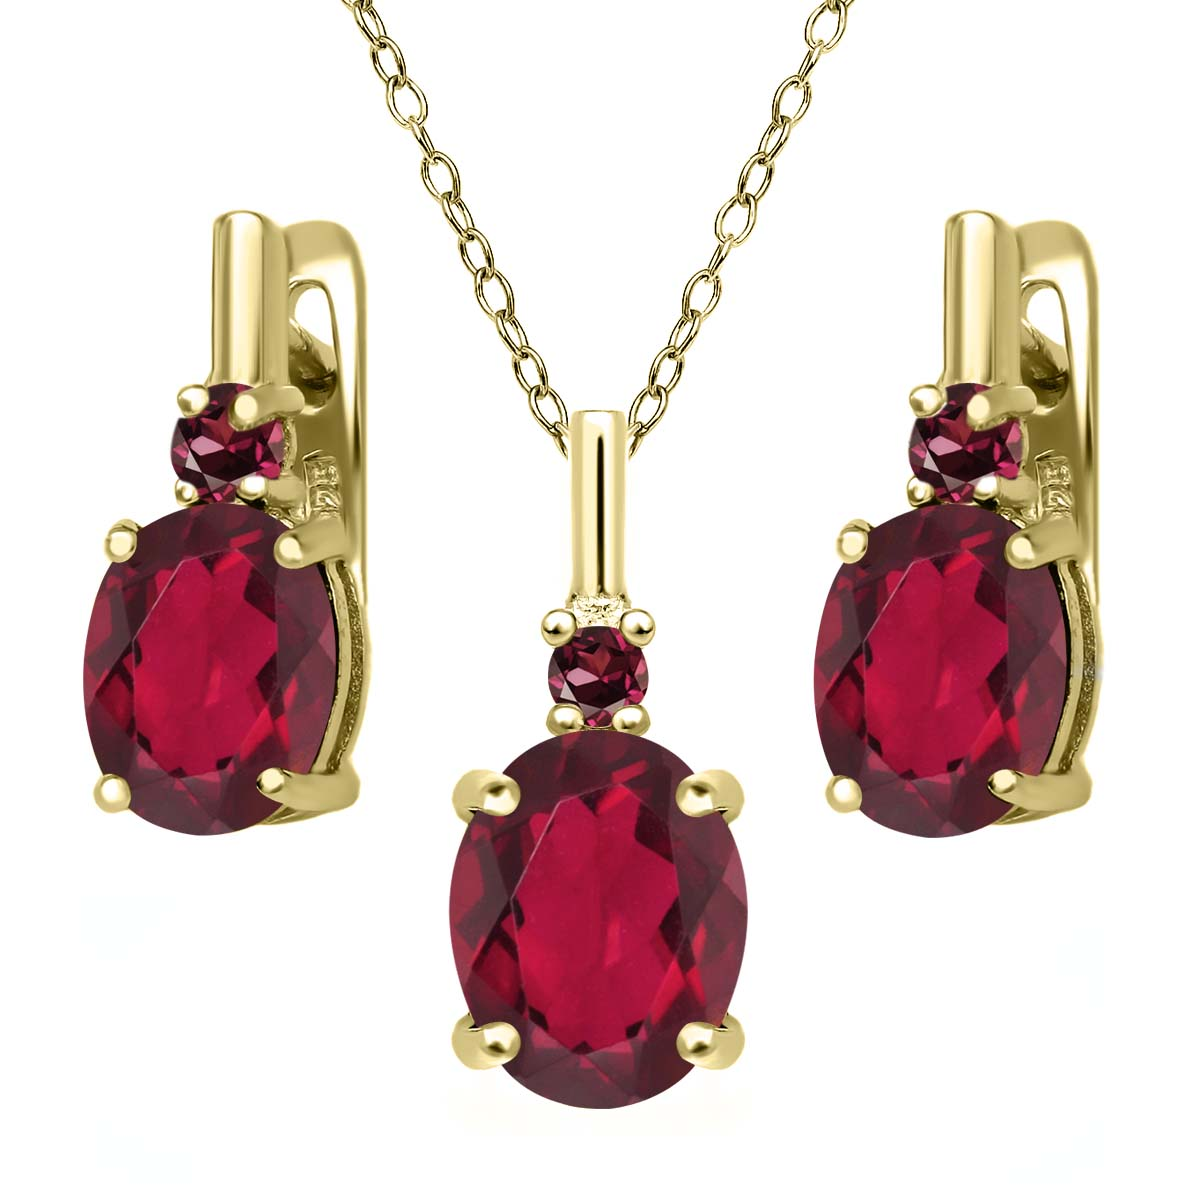 6.99 Ct Red Mystic Quartz Red Rhodolite Garnet 18K Yellow Gold Plated Silver Pendant Earrings Set by